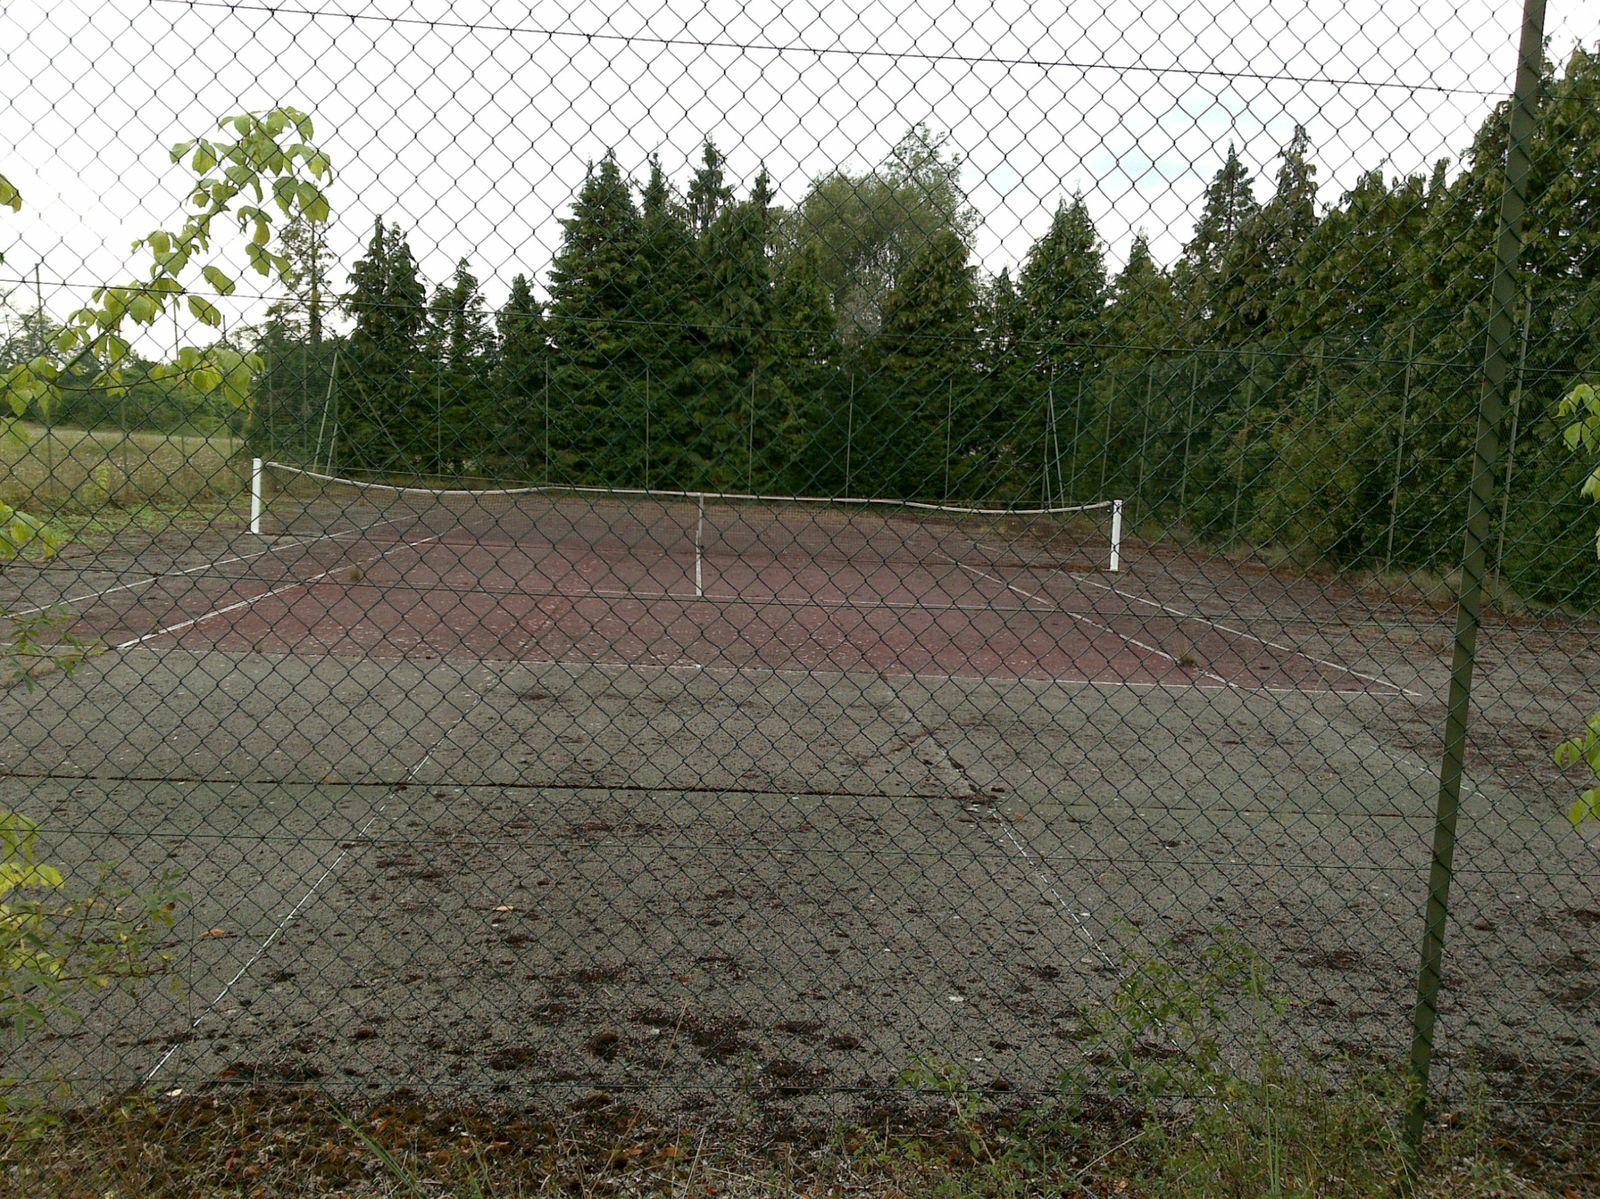 Terrain de tennis et de volley